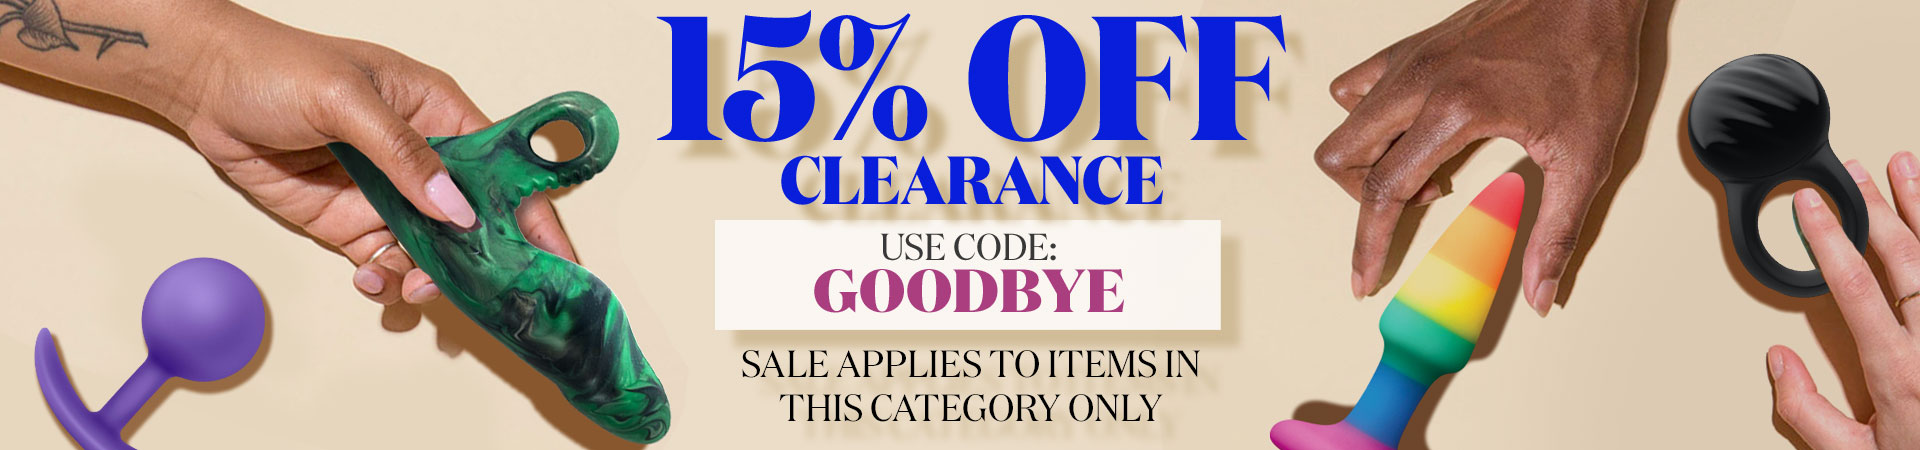 15% Off Clearance - Use Code: GOODBYE